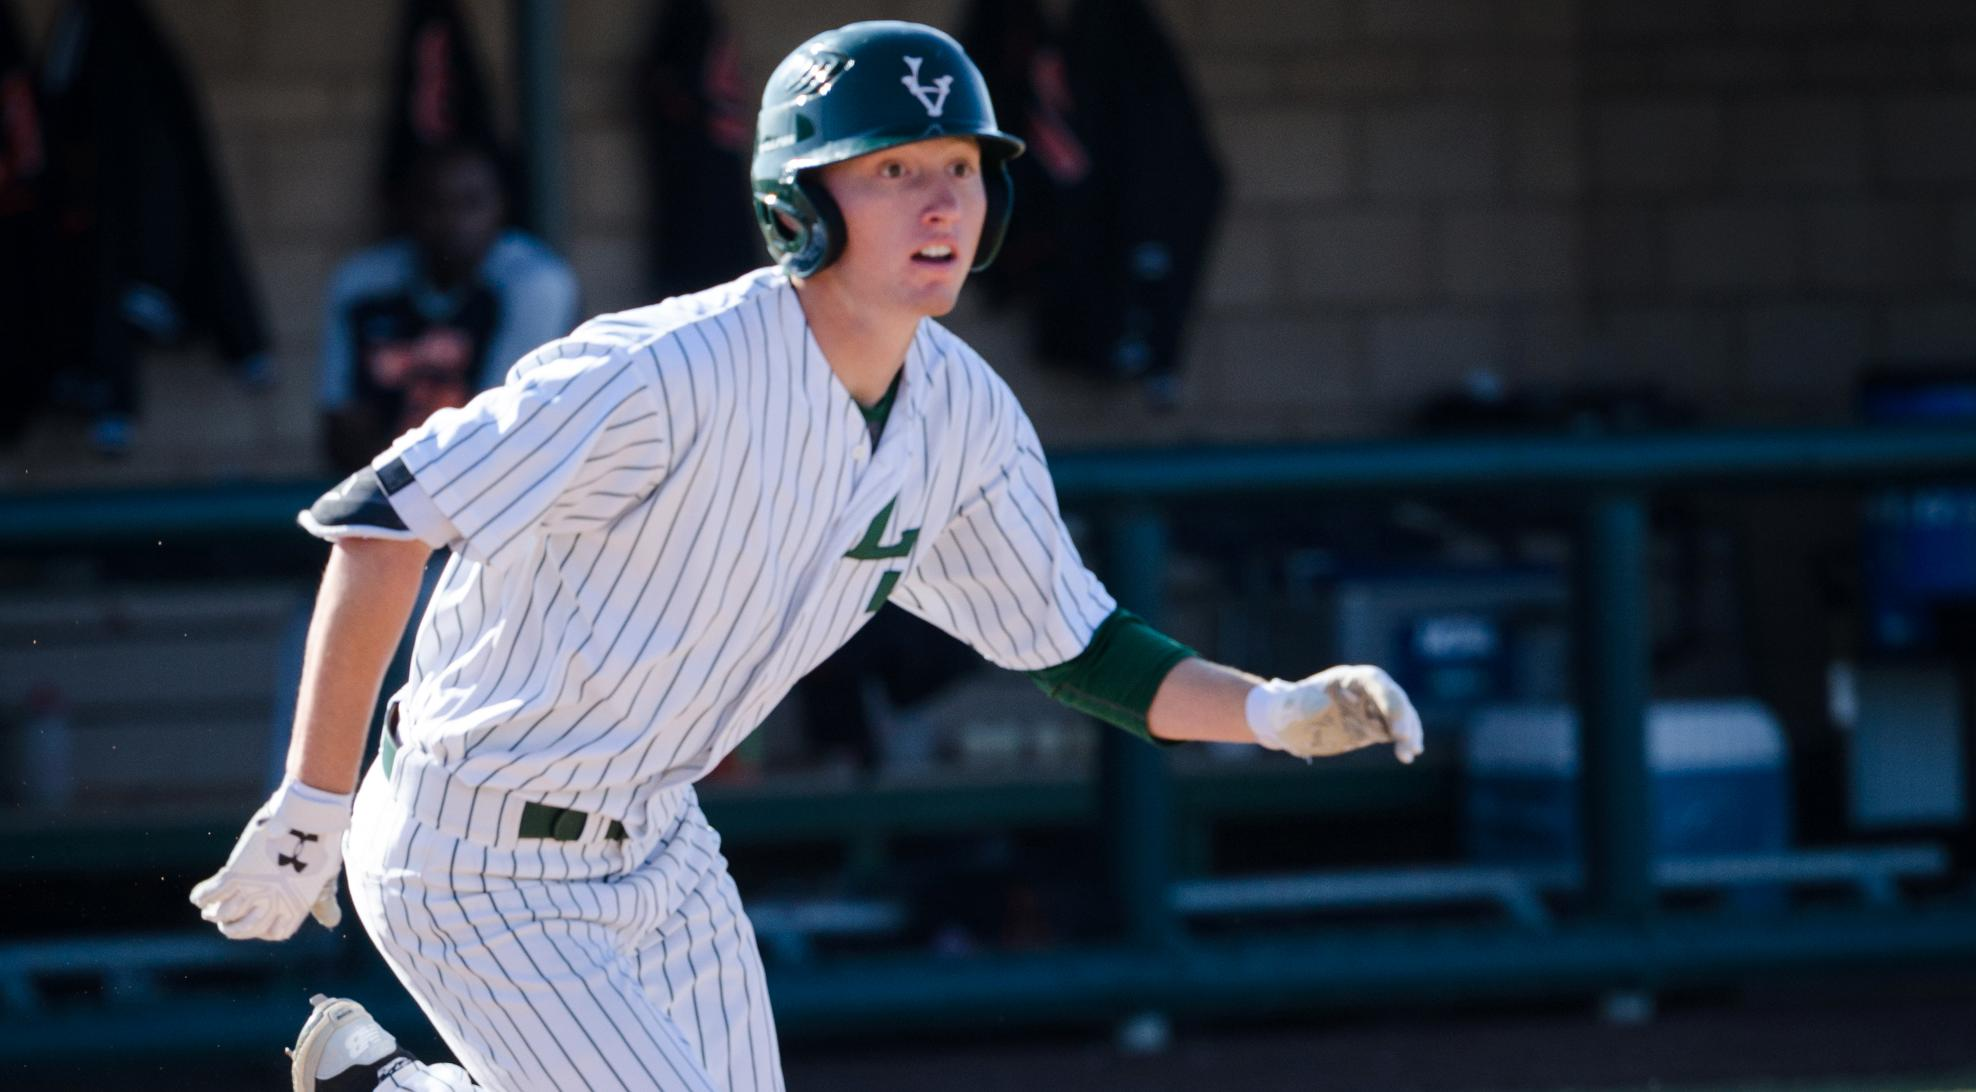 Baseball falls victim to late Pomona-Pitzer rally